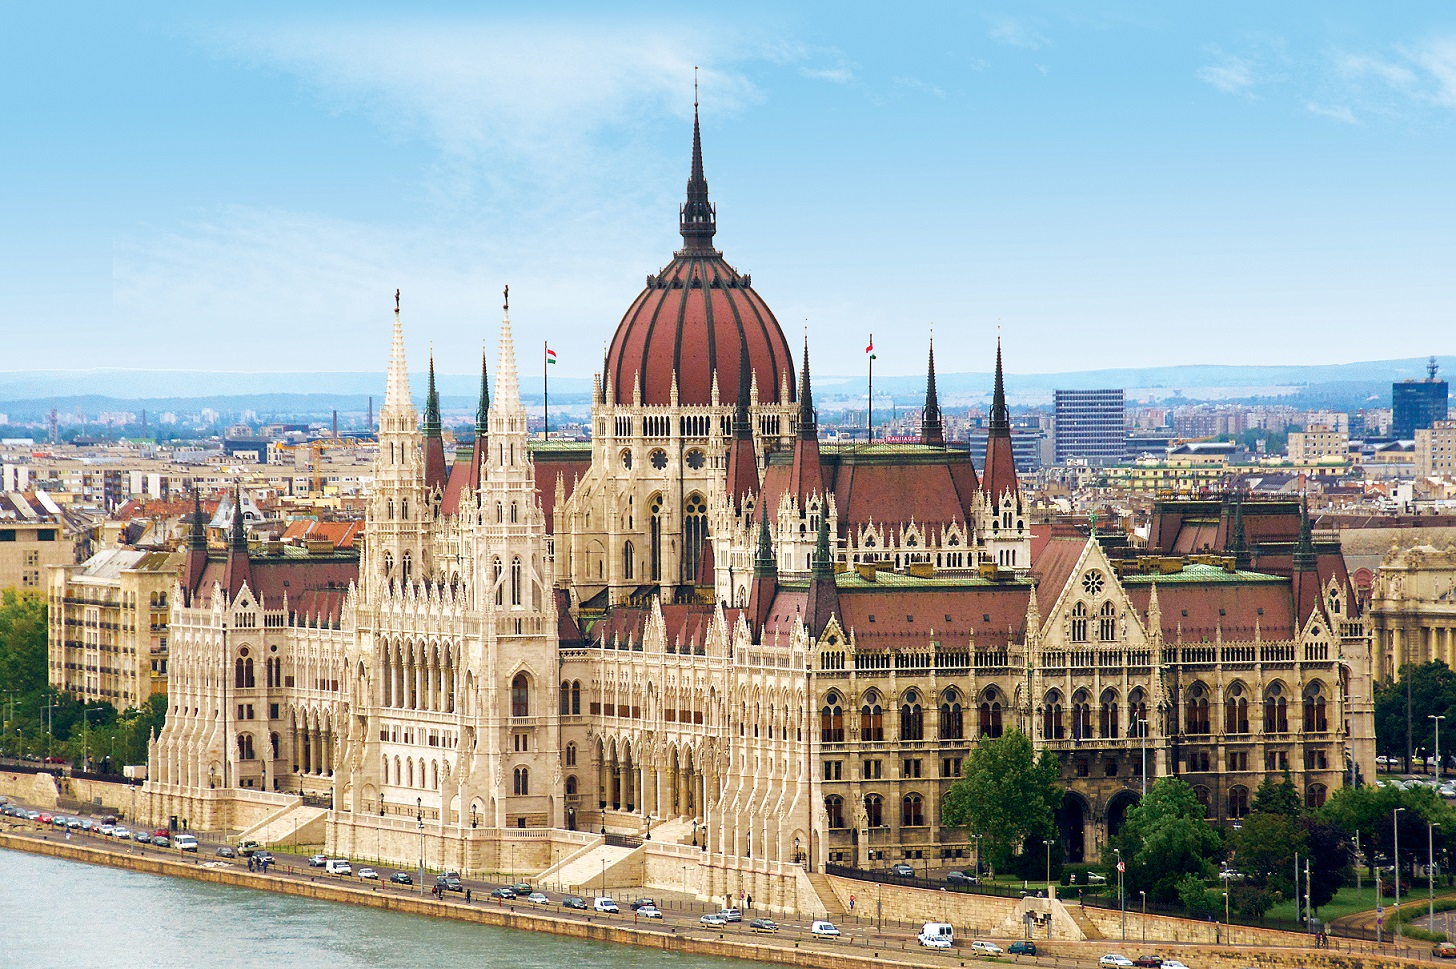 Budapest's Gothic Revival Parliament Building